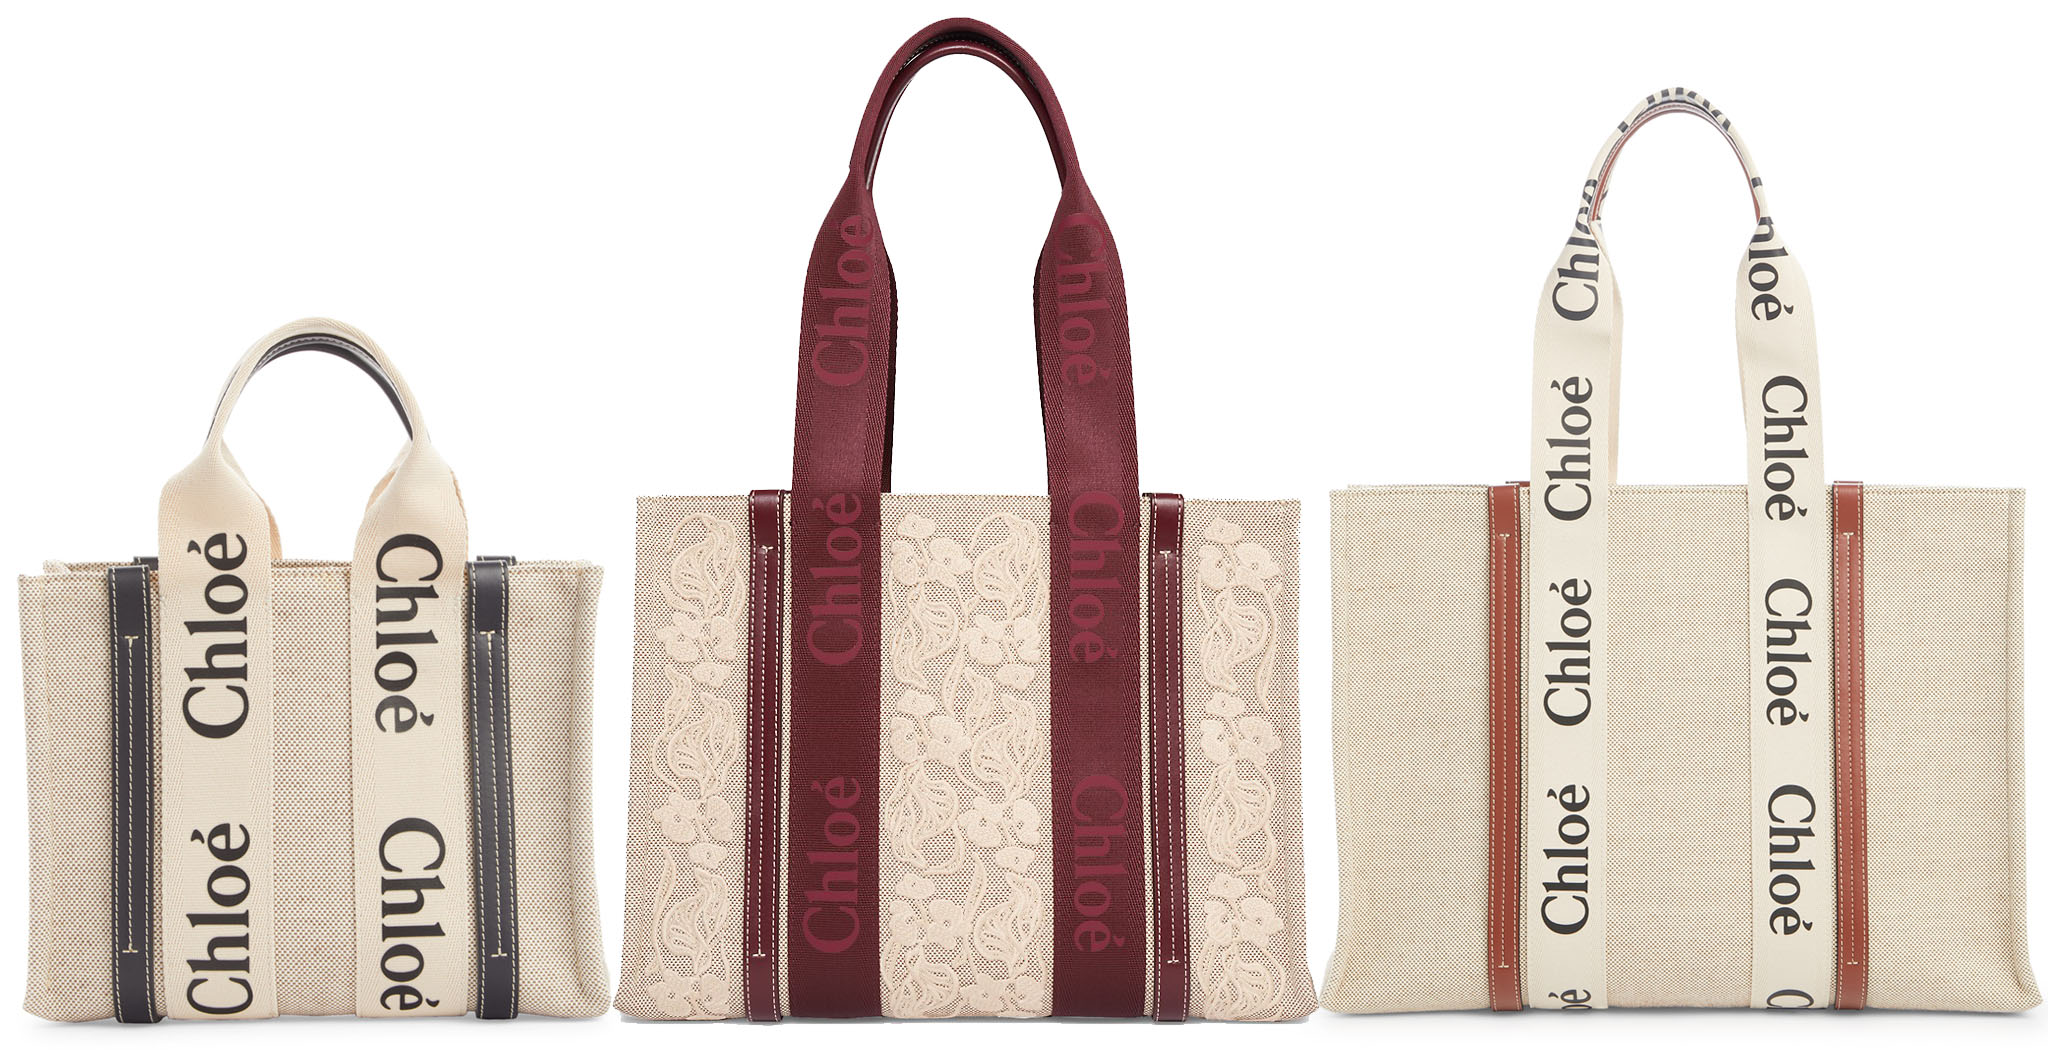 Chloe's Woody tote is a practical yet trendy bag made of neutral canvas with leather trims